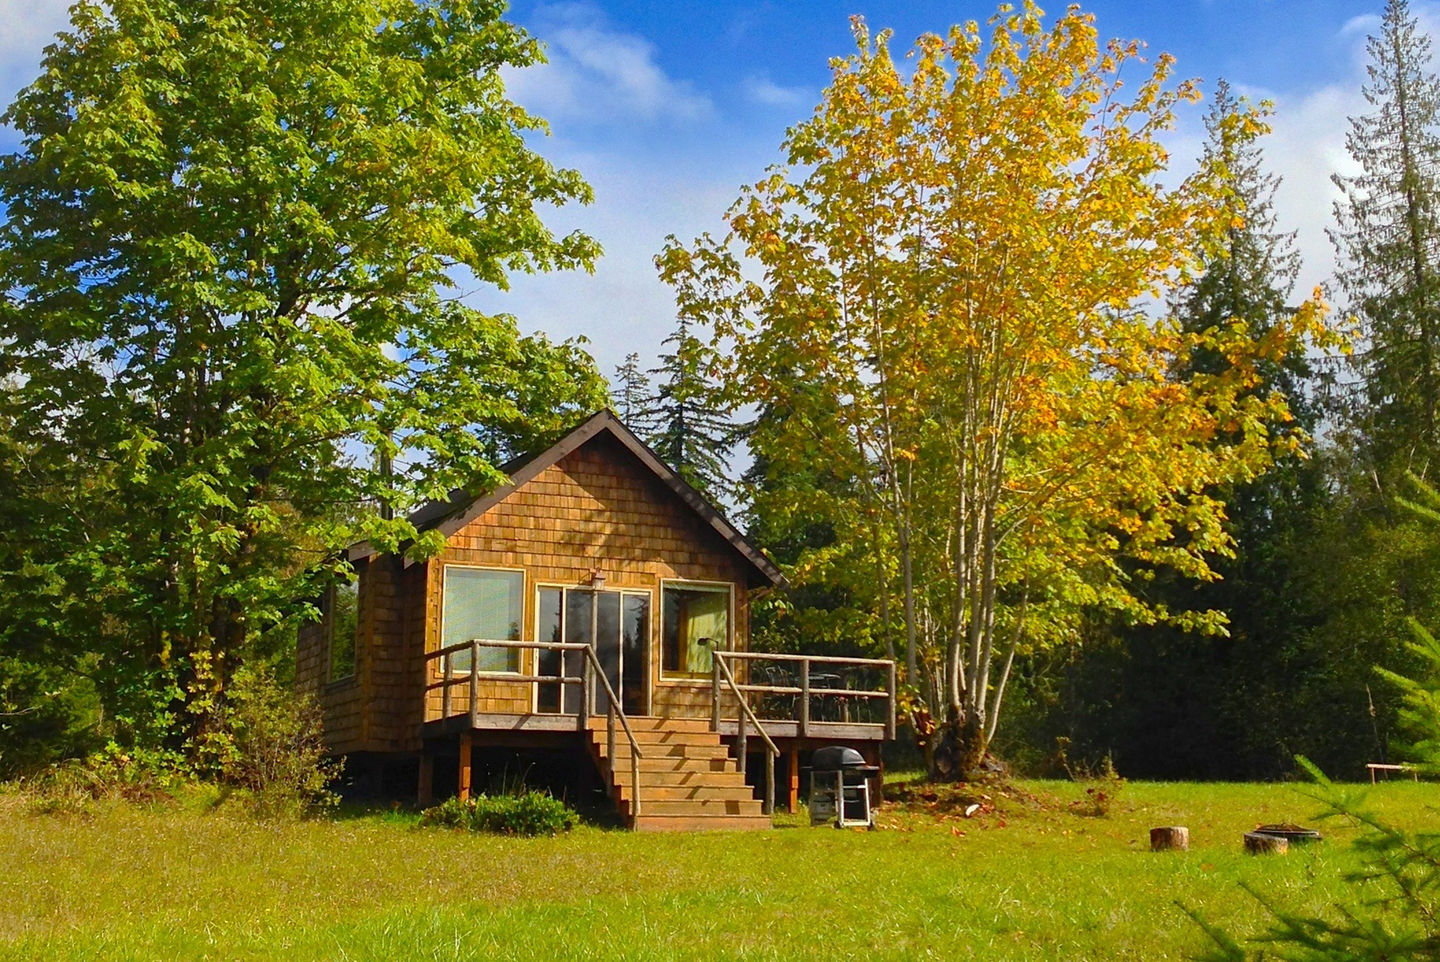 Superb The Pond Cottage, A Small Cabin Tucked Into A Secluded Forest Meadow.  Inside It